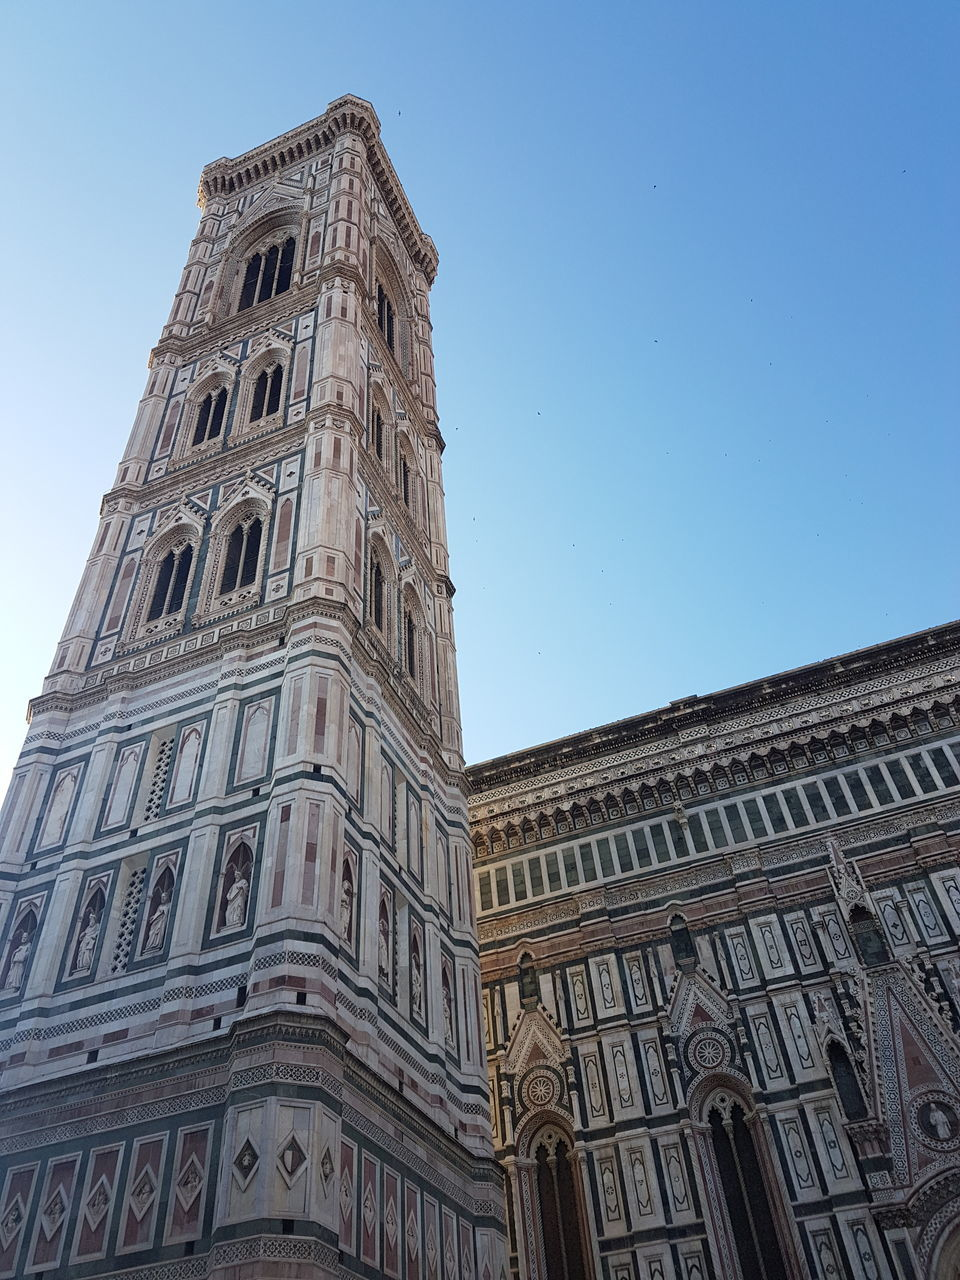 architecture, low angle view, built structure, building exterior, history, religion, day, tower, travel destinations, outdoors, place of worship, no people, sky, spirituality, clock tower, blue, clear sky, clock